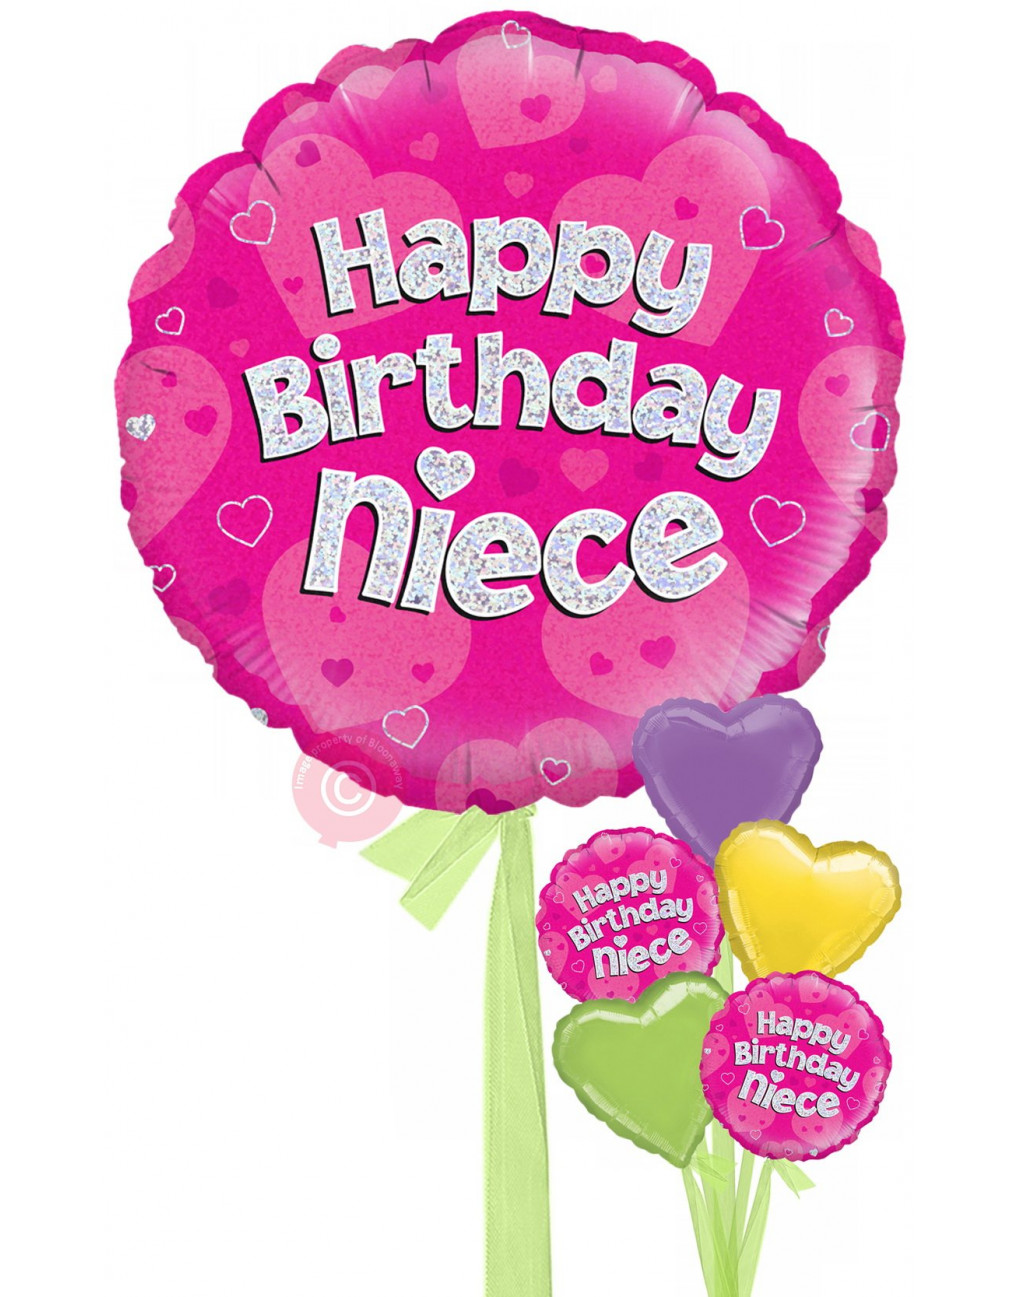 Happy Niece Birthday Images